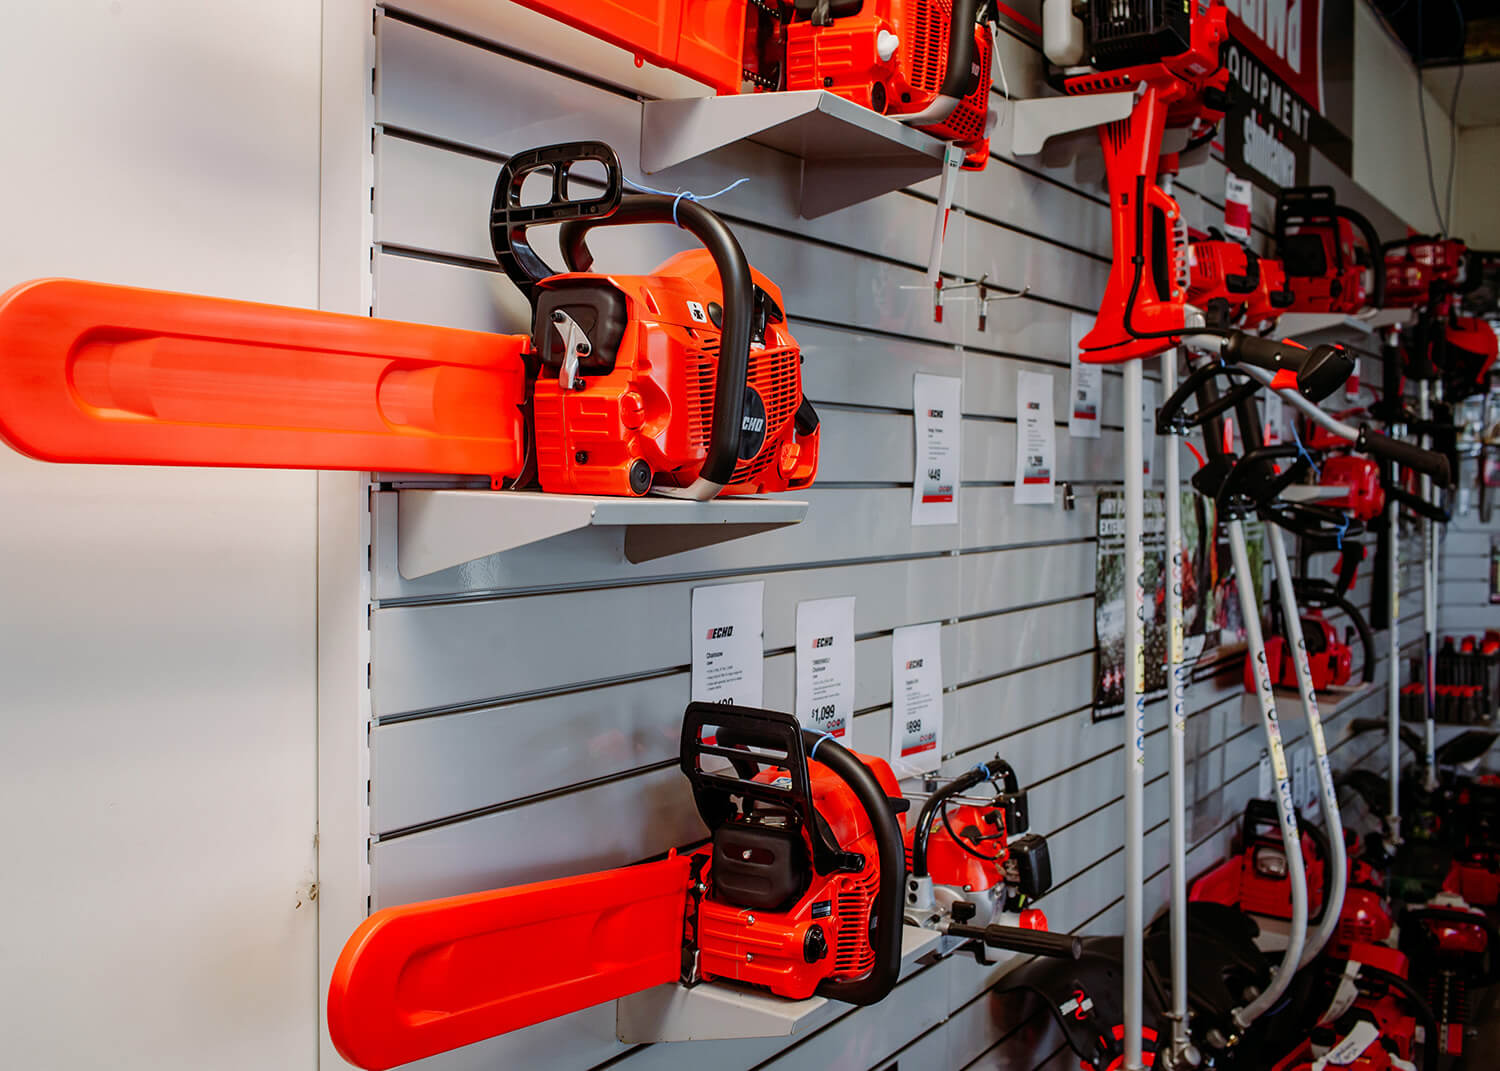 chainsaws and power tools